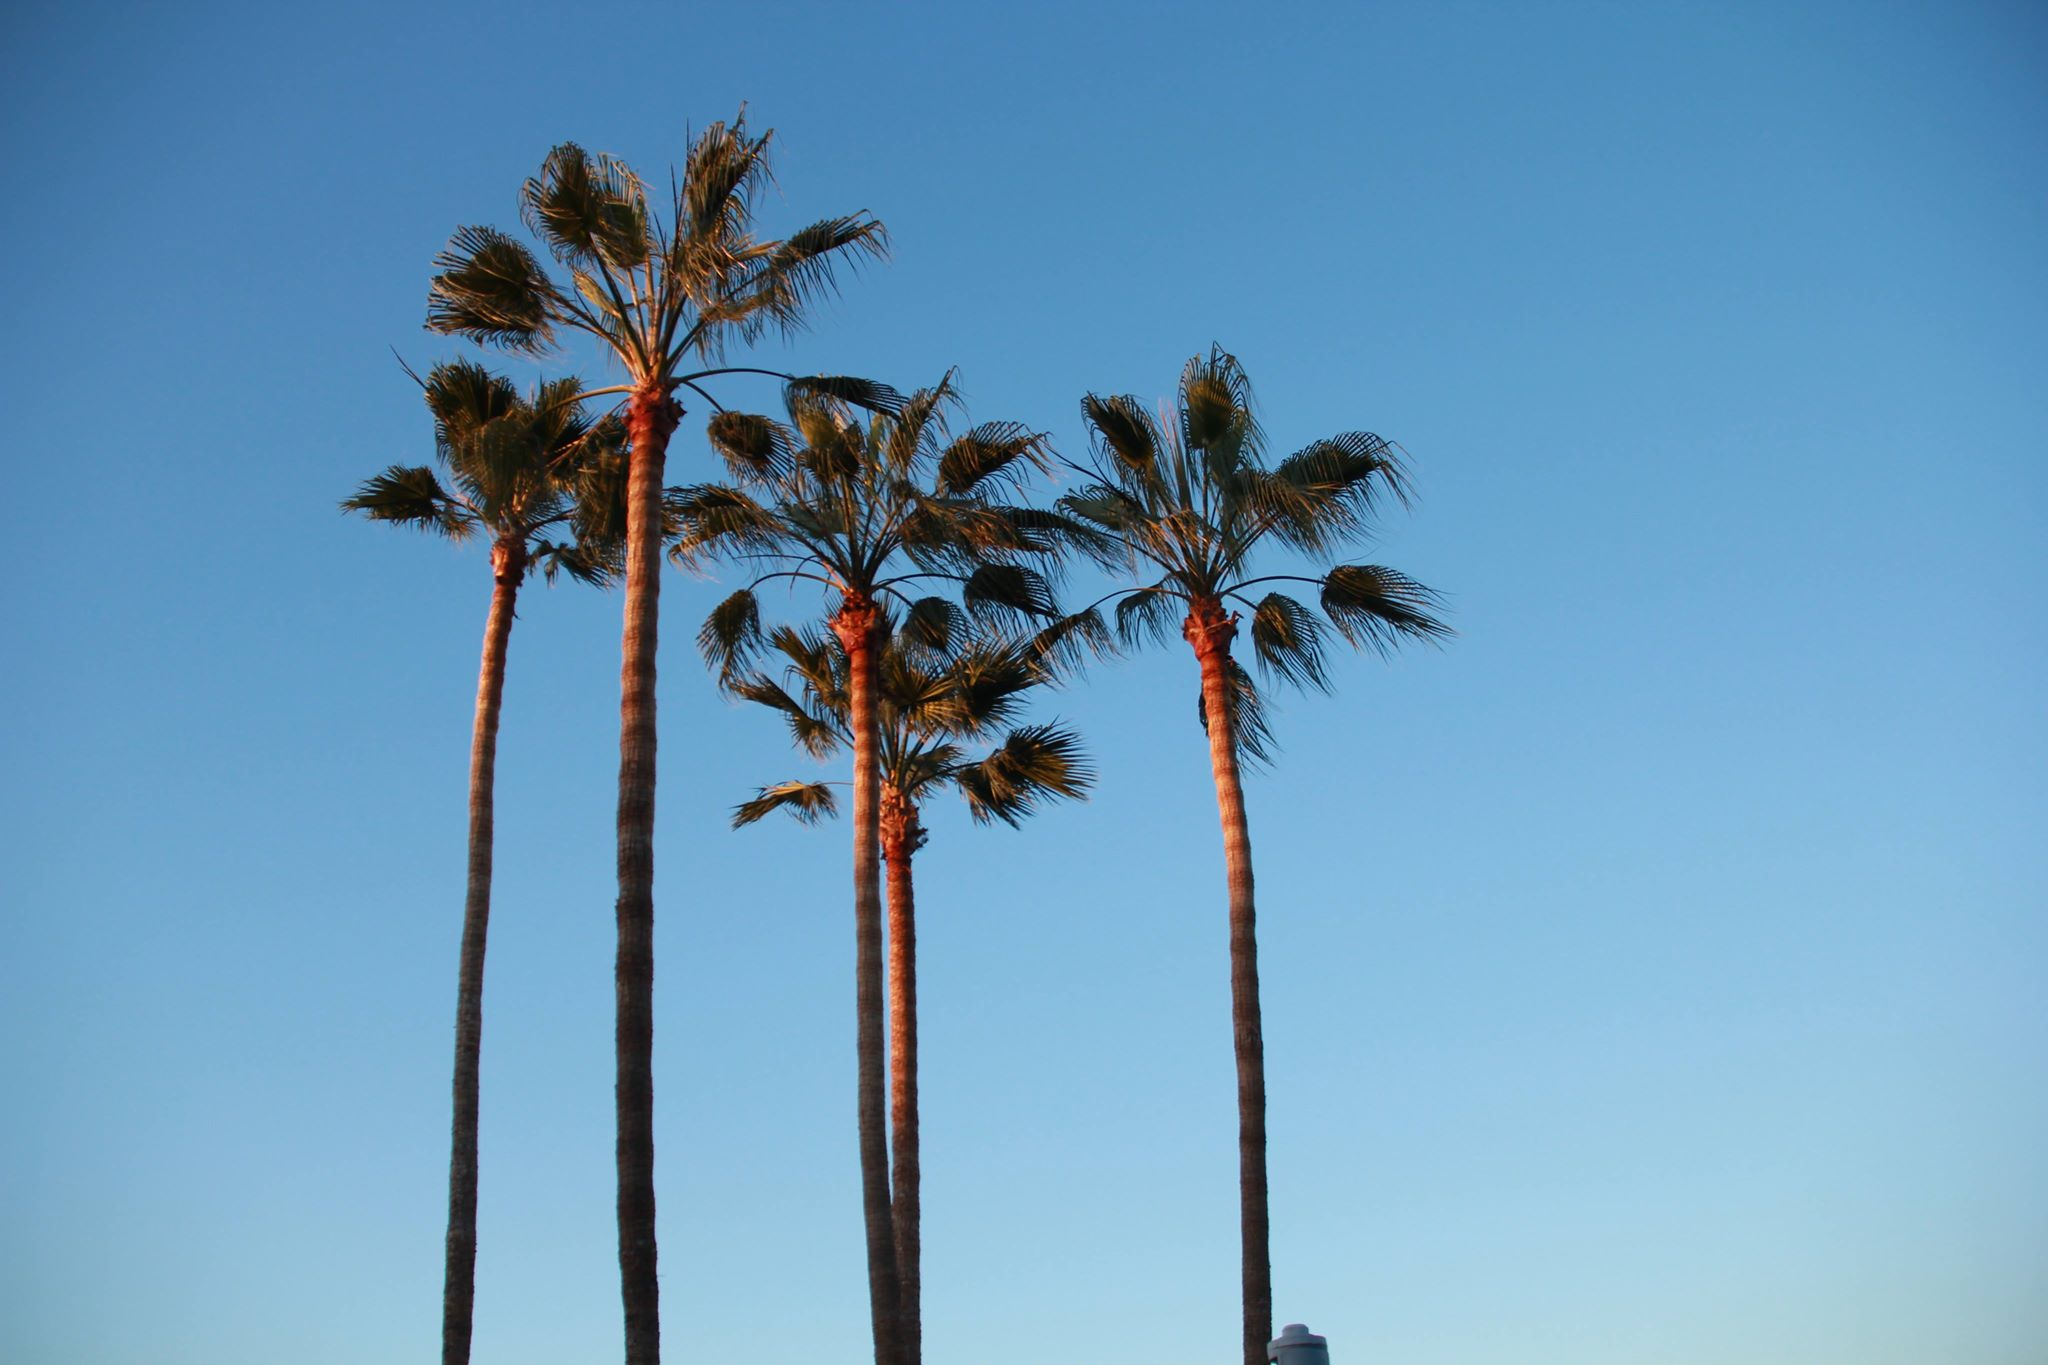 Palm trees in San Jose, California. Photo by Kitty Lo.